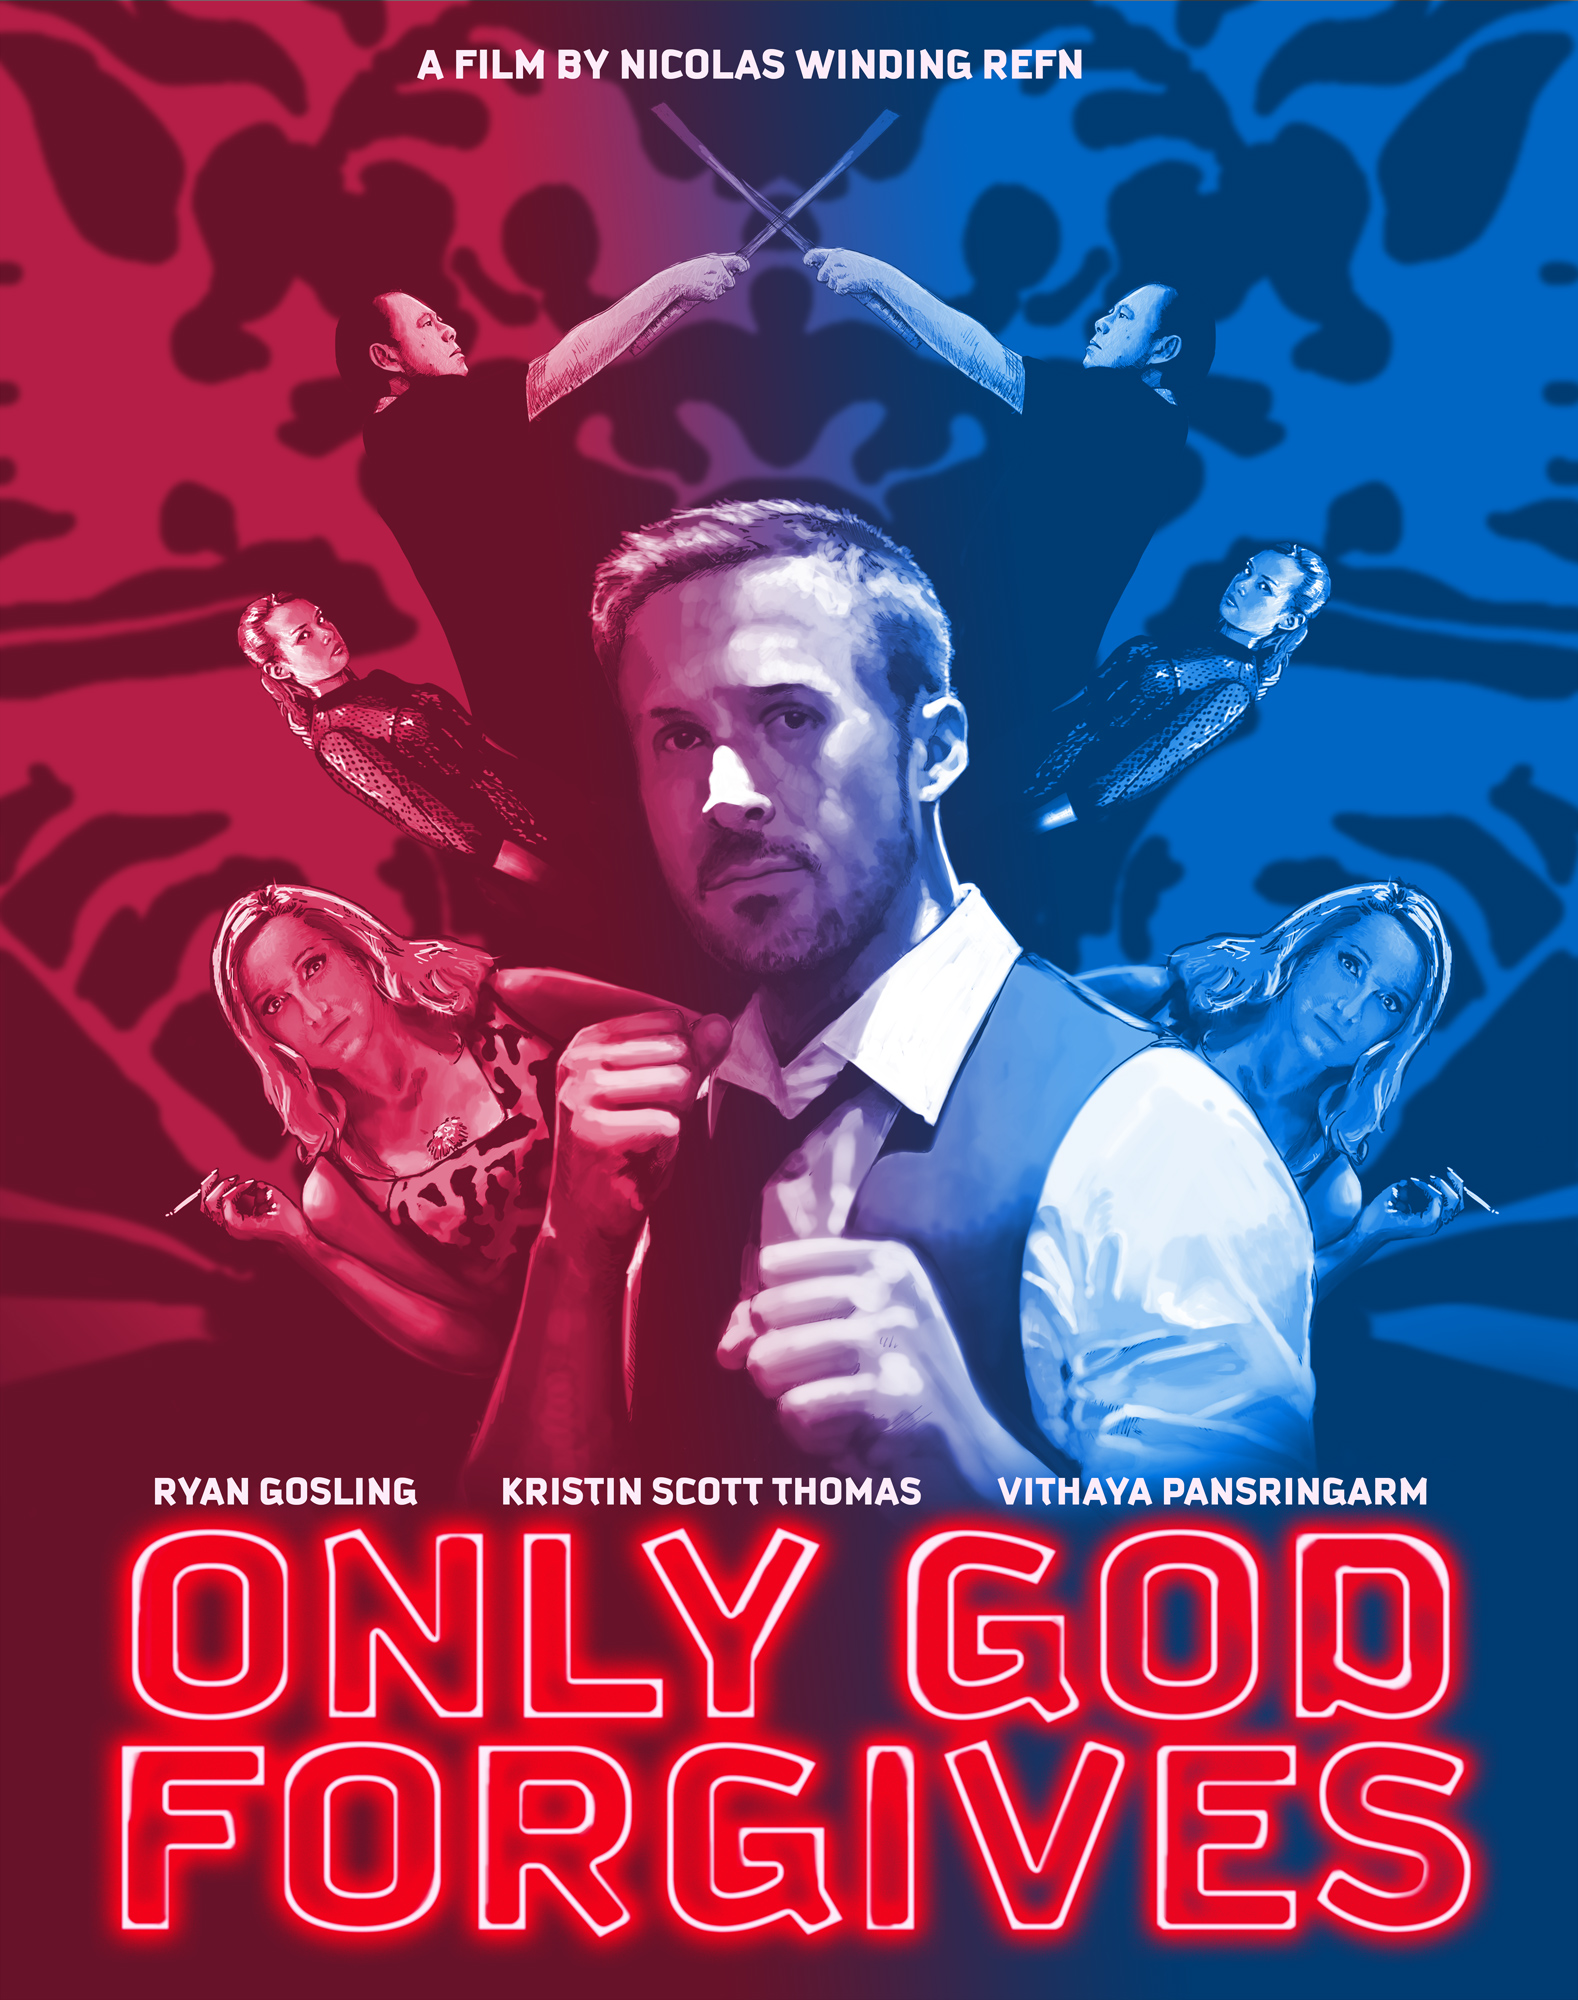 Only-God-Forgives10.jpg